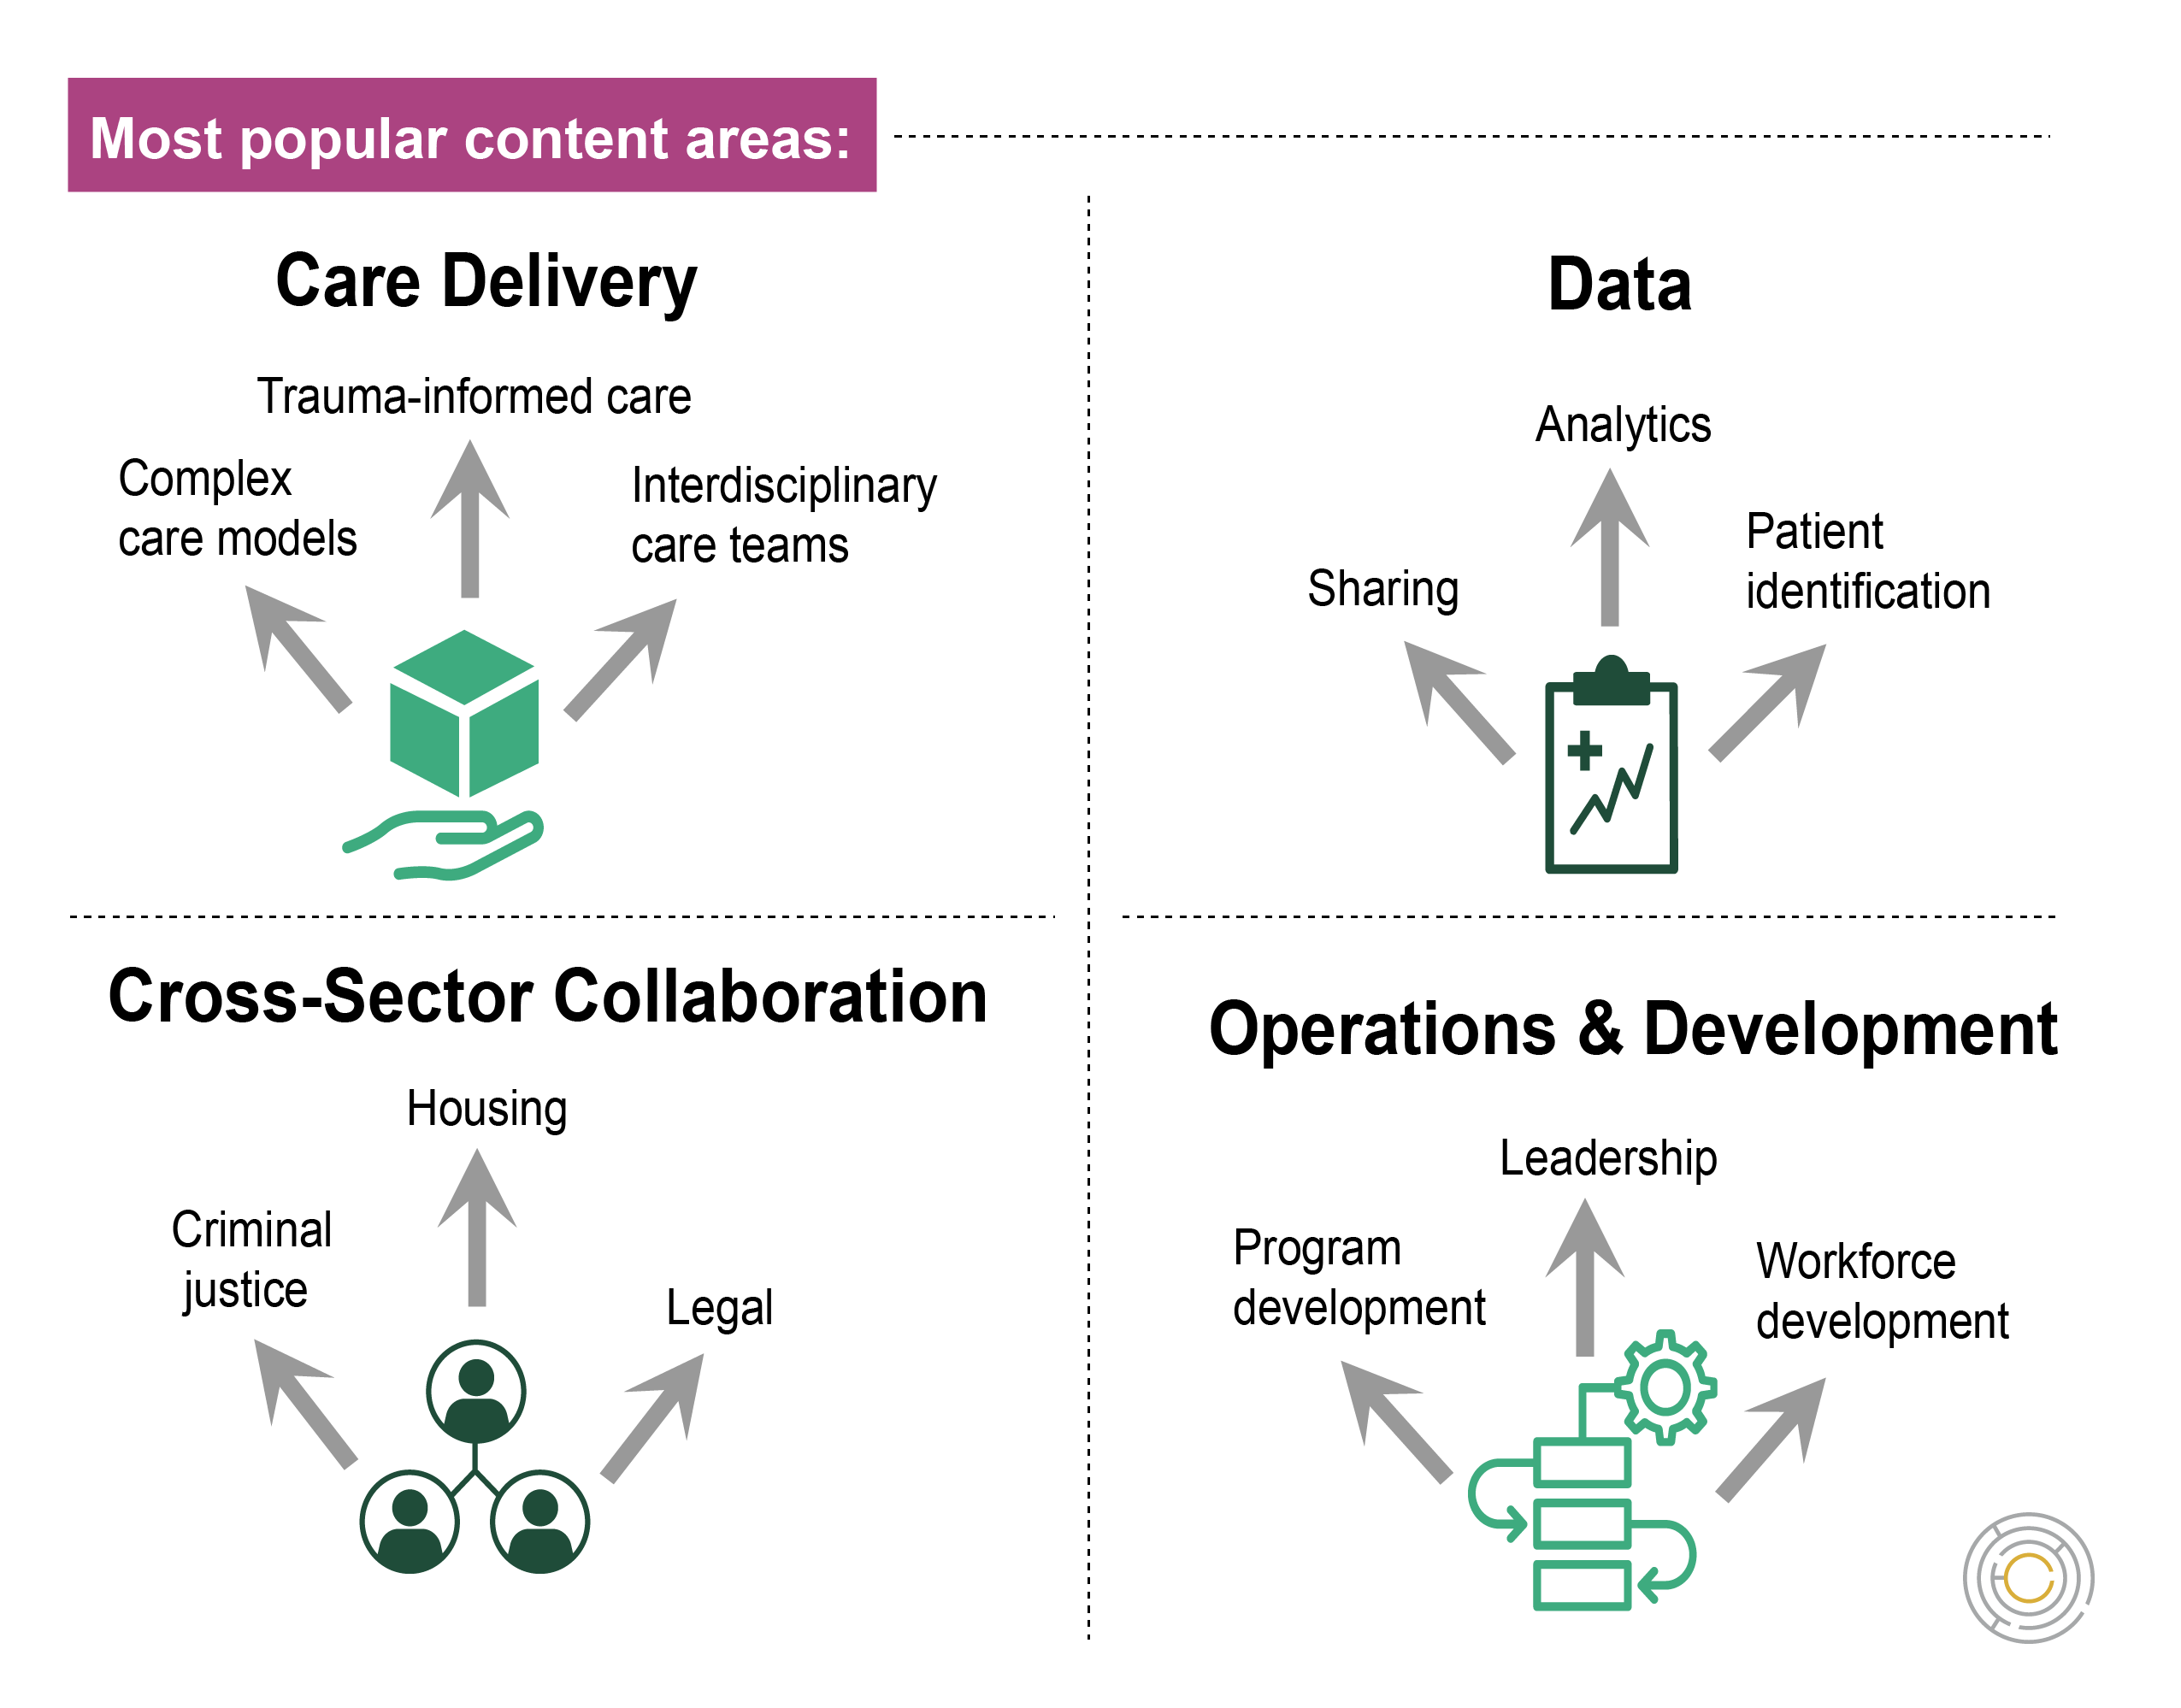 Infographic showing most popular content areas: Care delivery, Data, Cross-sector collaboration, and Operations & development